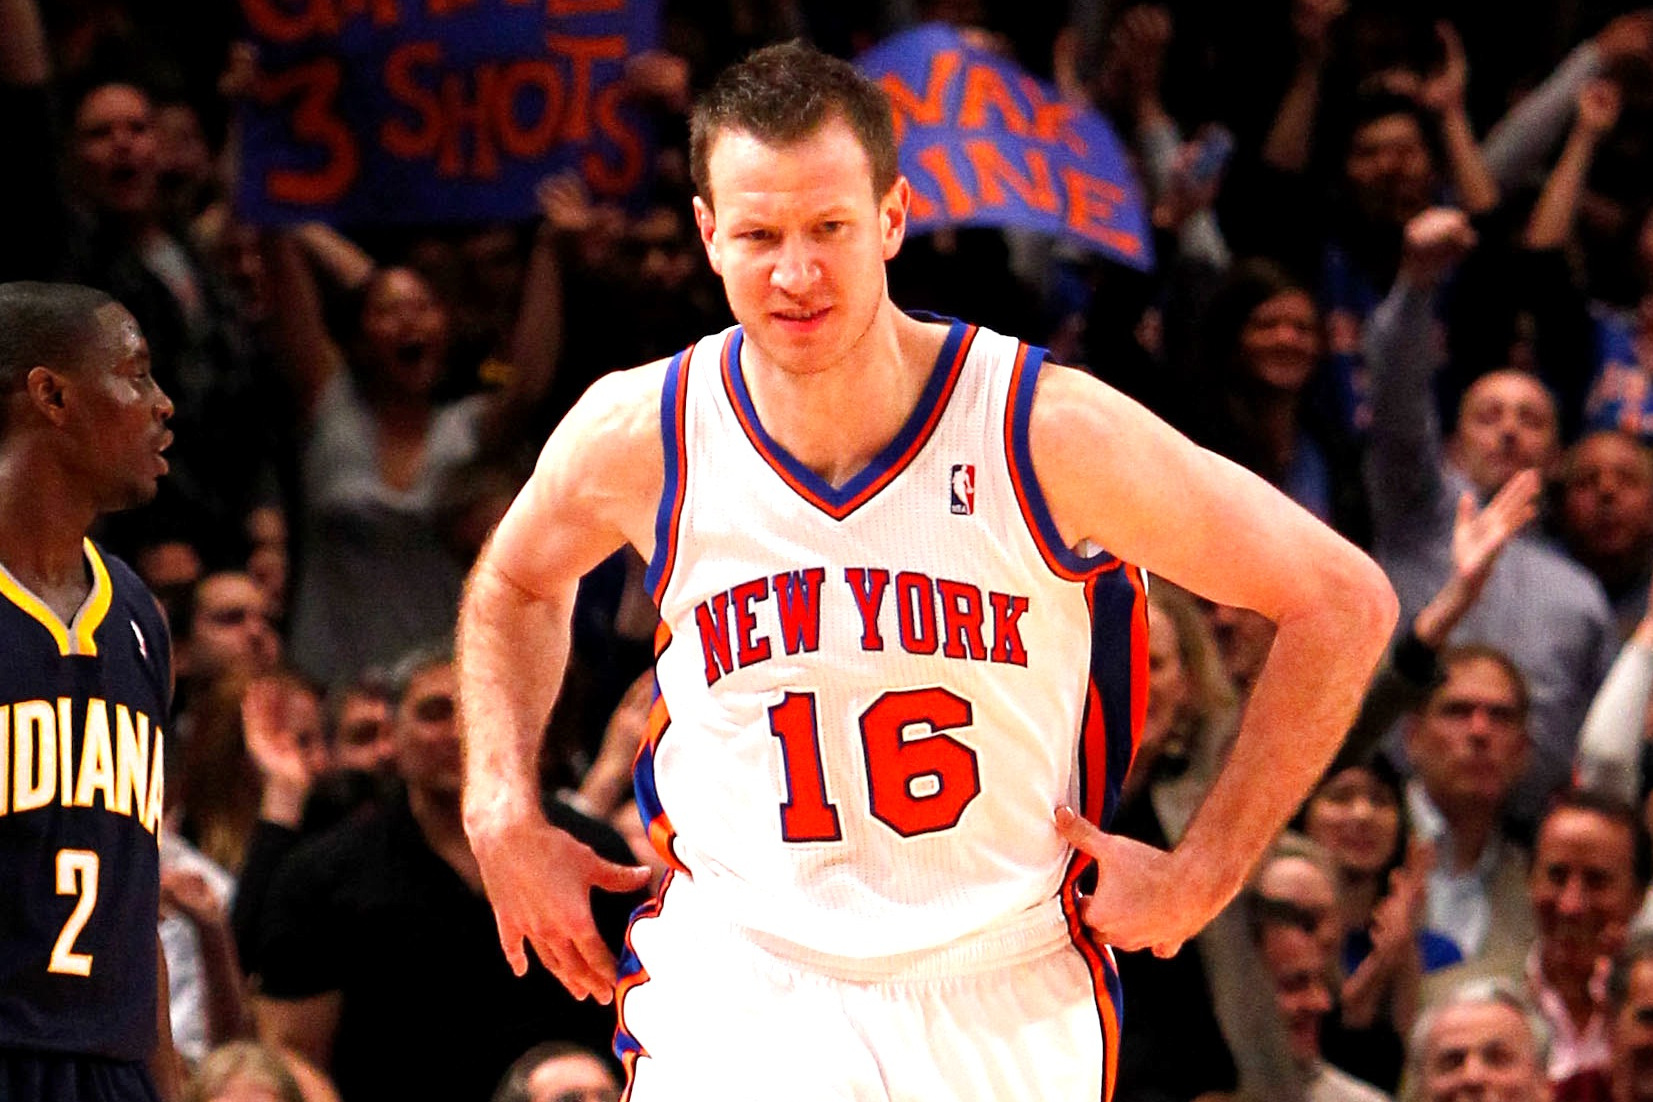 hot sale online 71aaf 87f6a NBA Free Agency 2012: Steve Novak and N.Y. Knicks Agree to ...